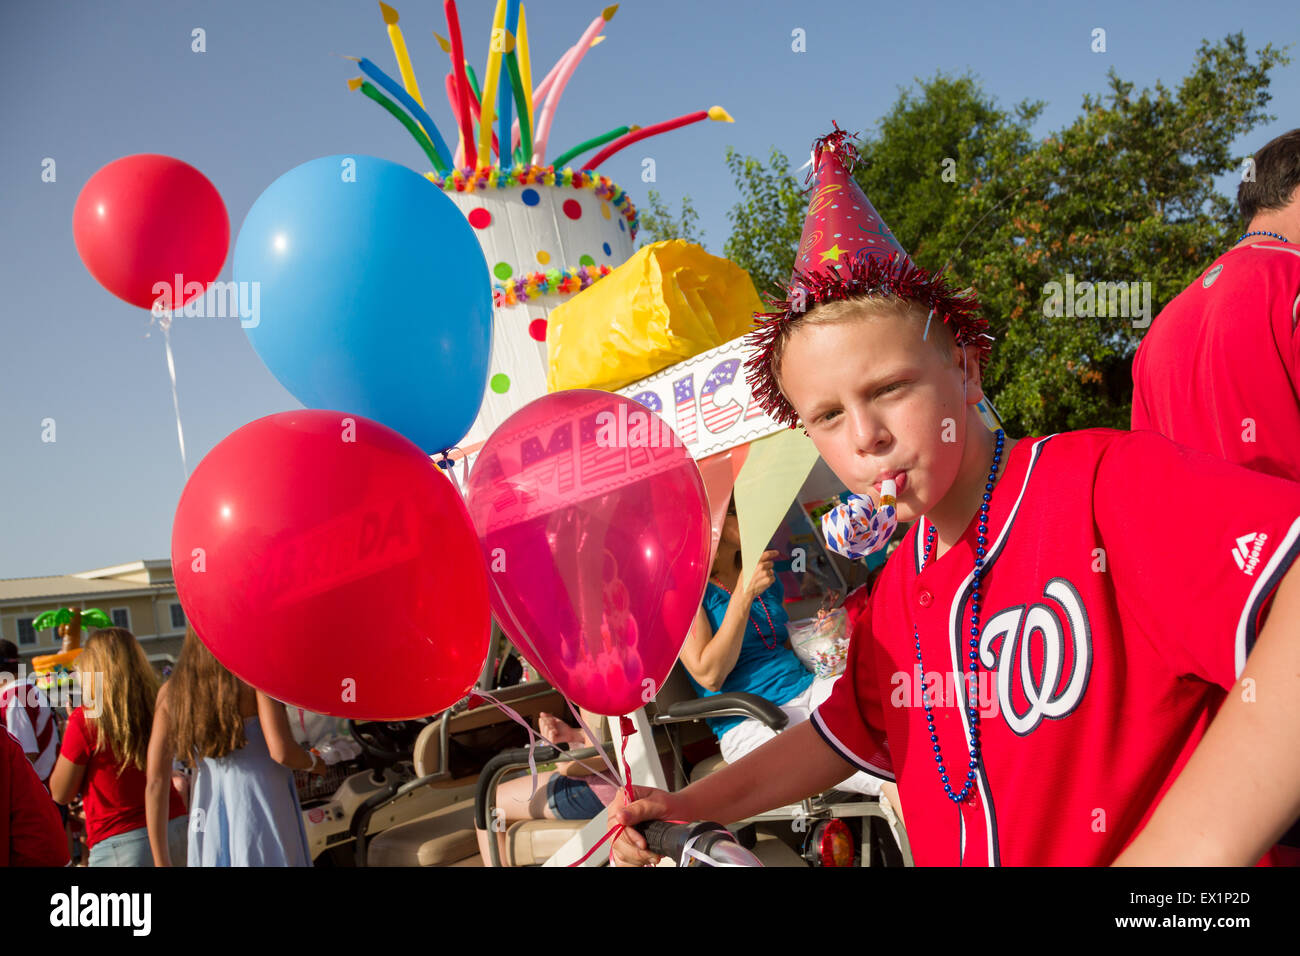 South Carolina, USA. 4th July, 2015. A young boy dressed for a birthday party as America celebrates Independence - Stock Image